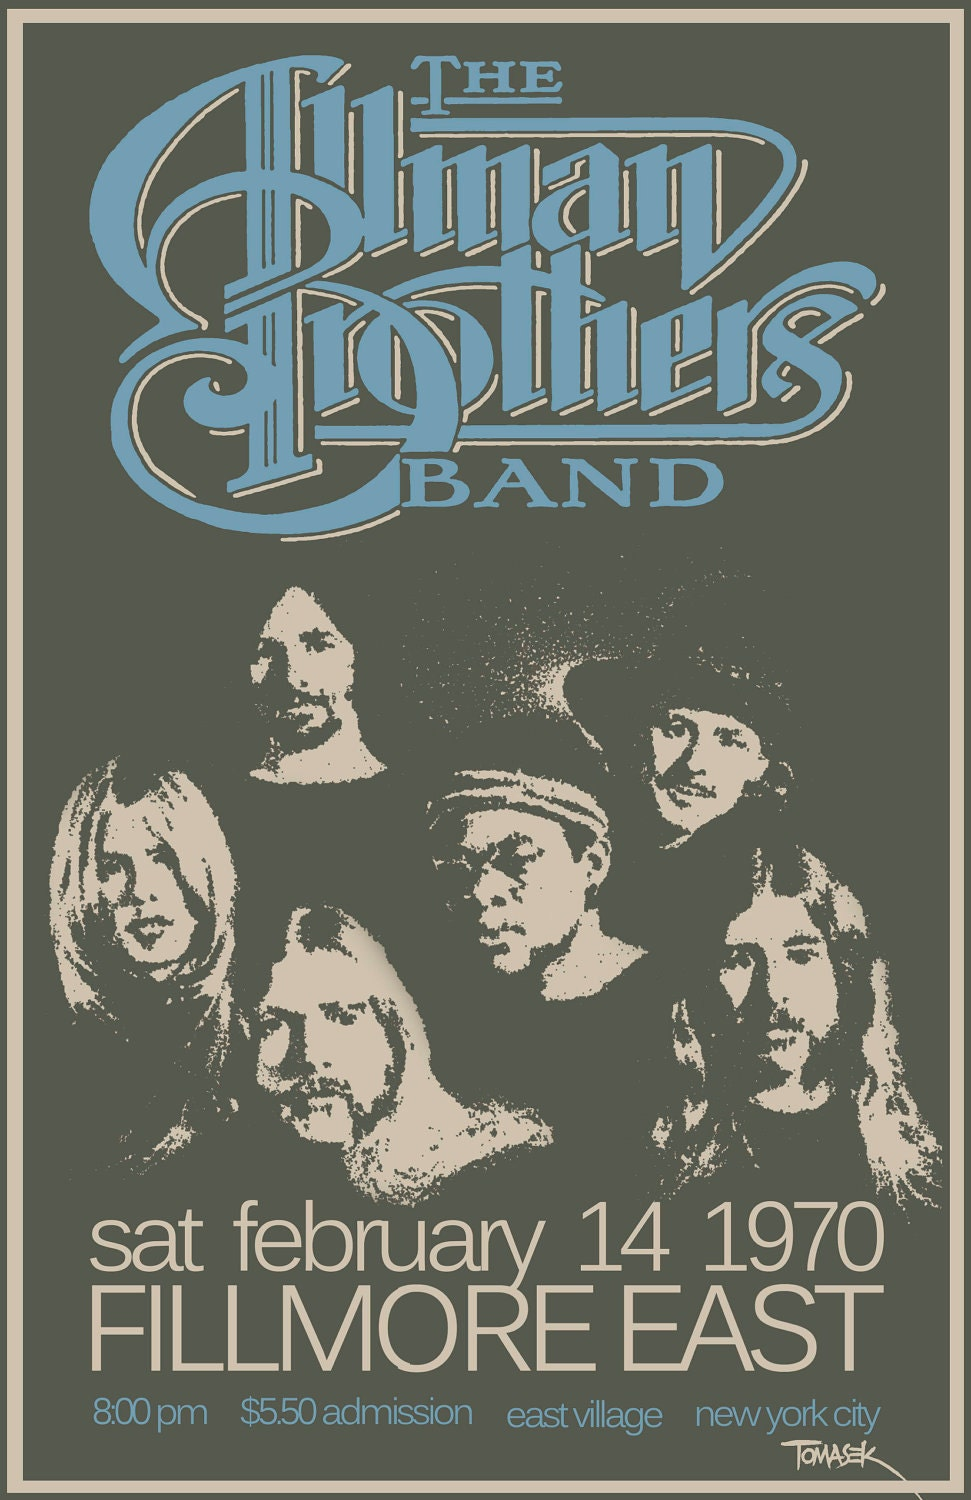 Allman Brothers Tour Dates